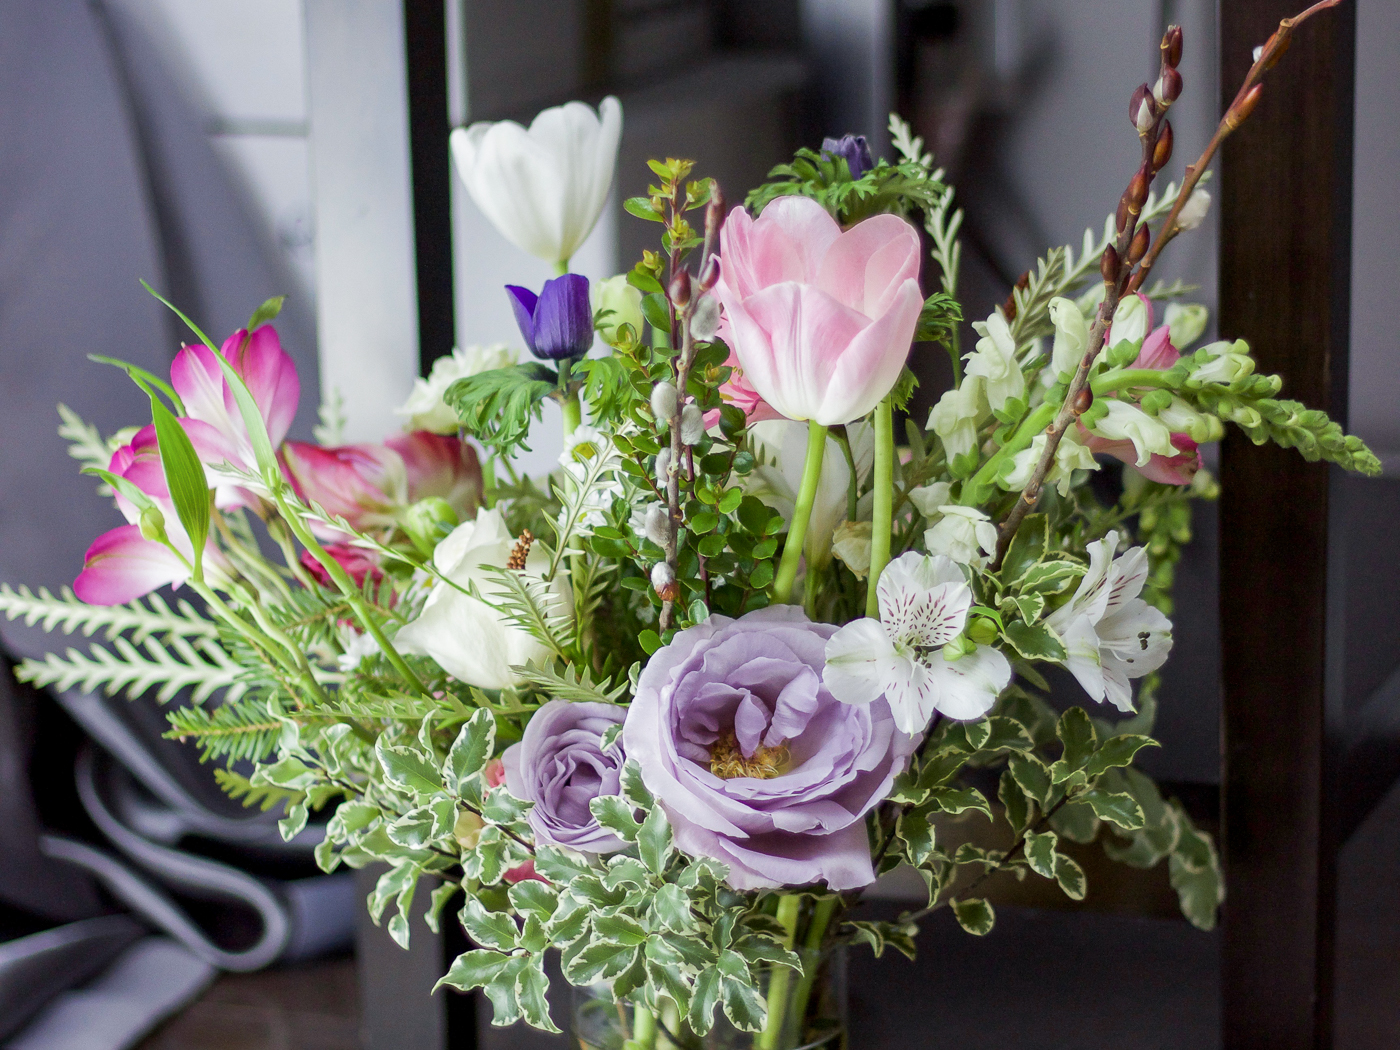 Flower arranging tips that I learned at a workshop at Wild North Flowers in Toronto